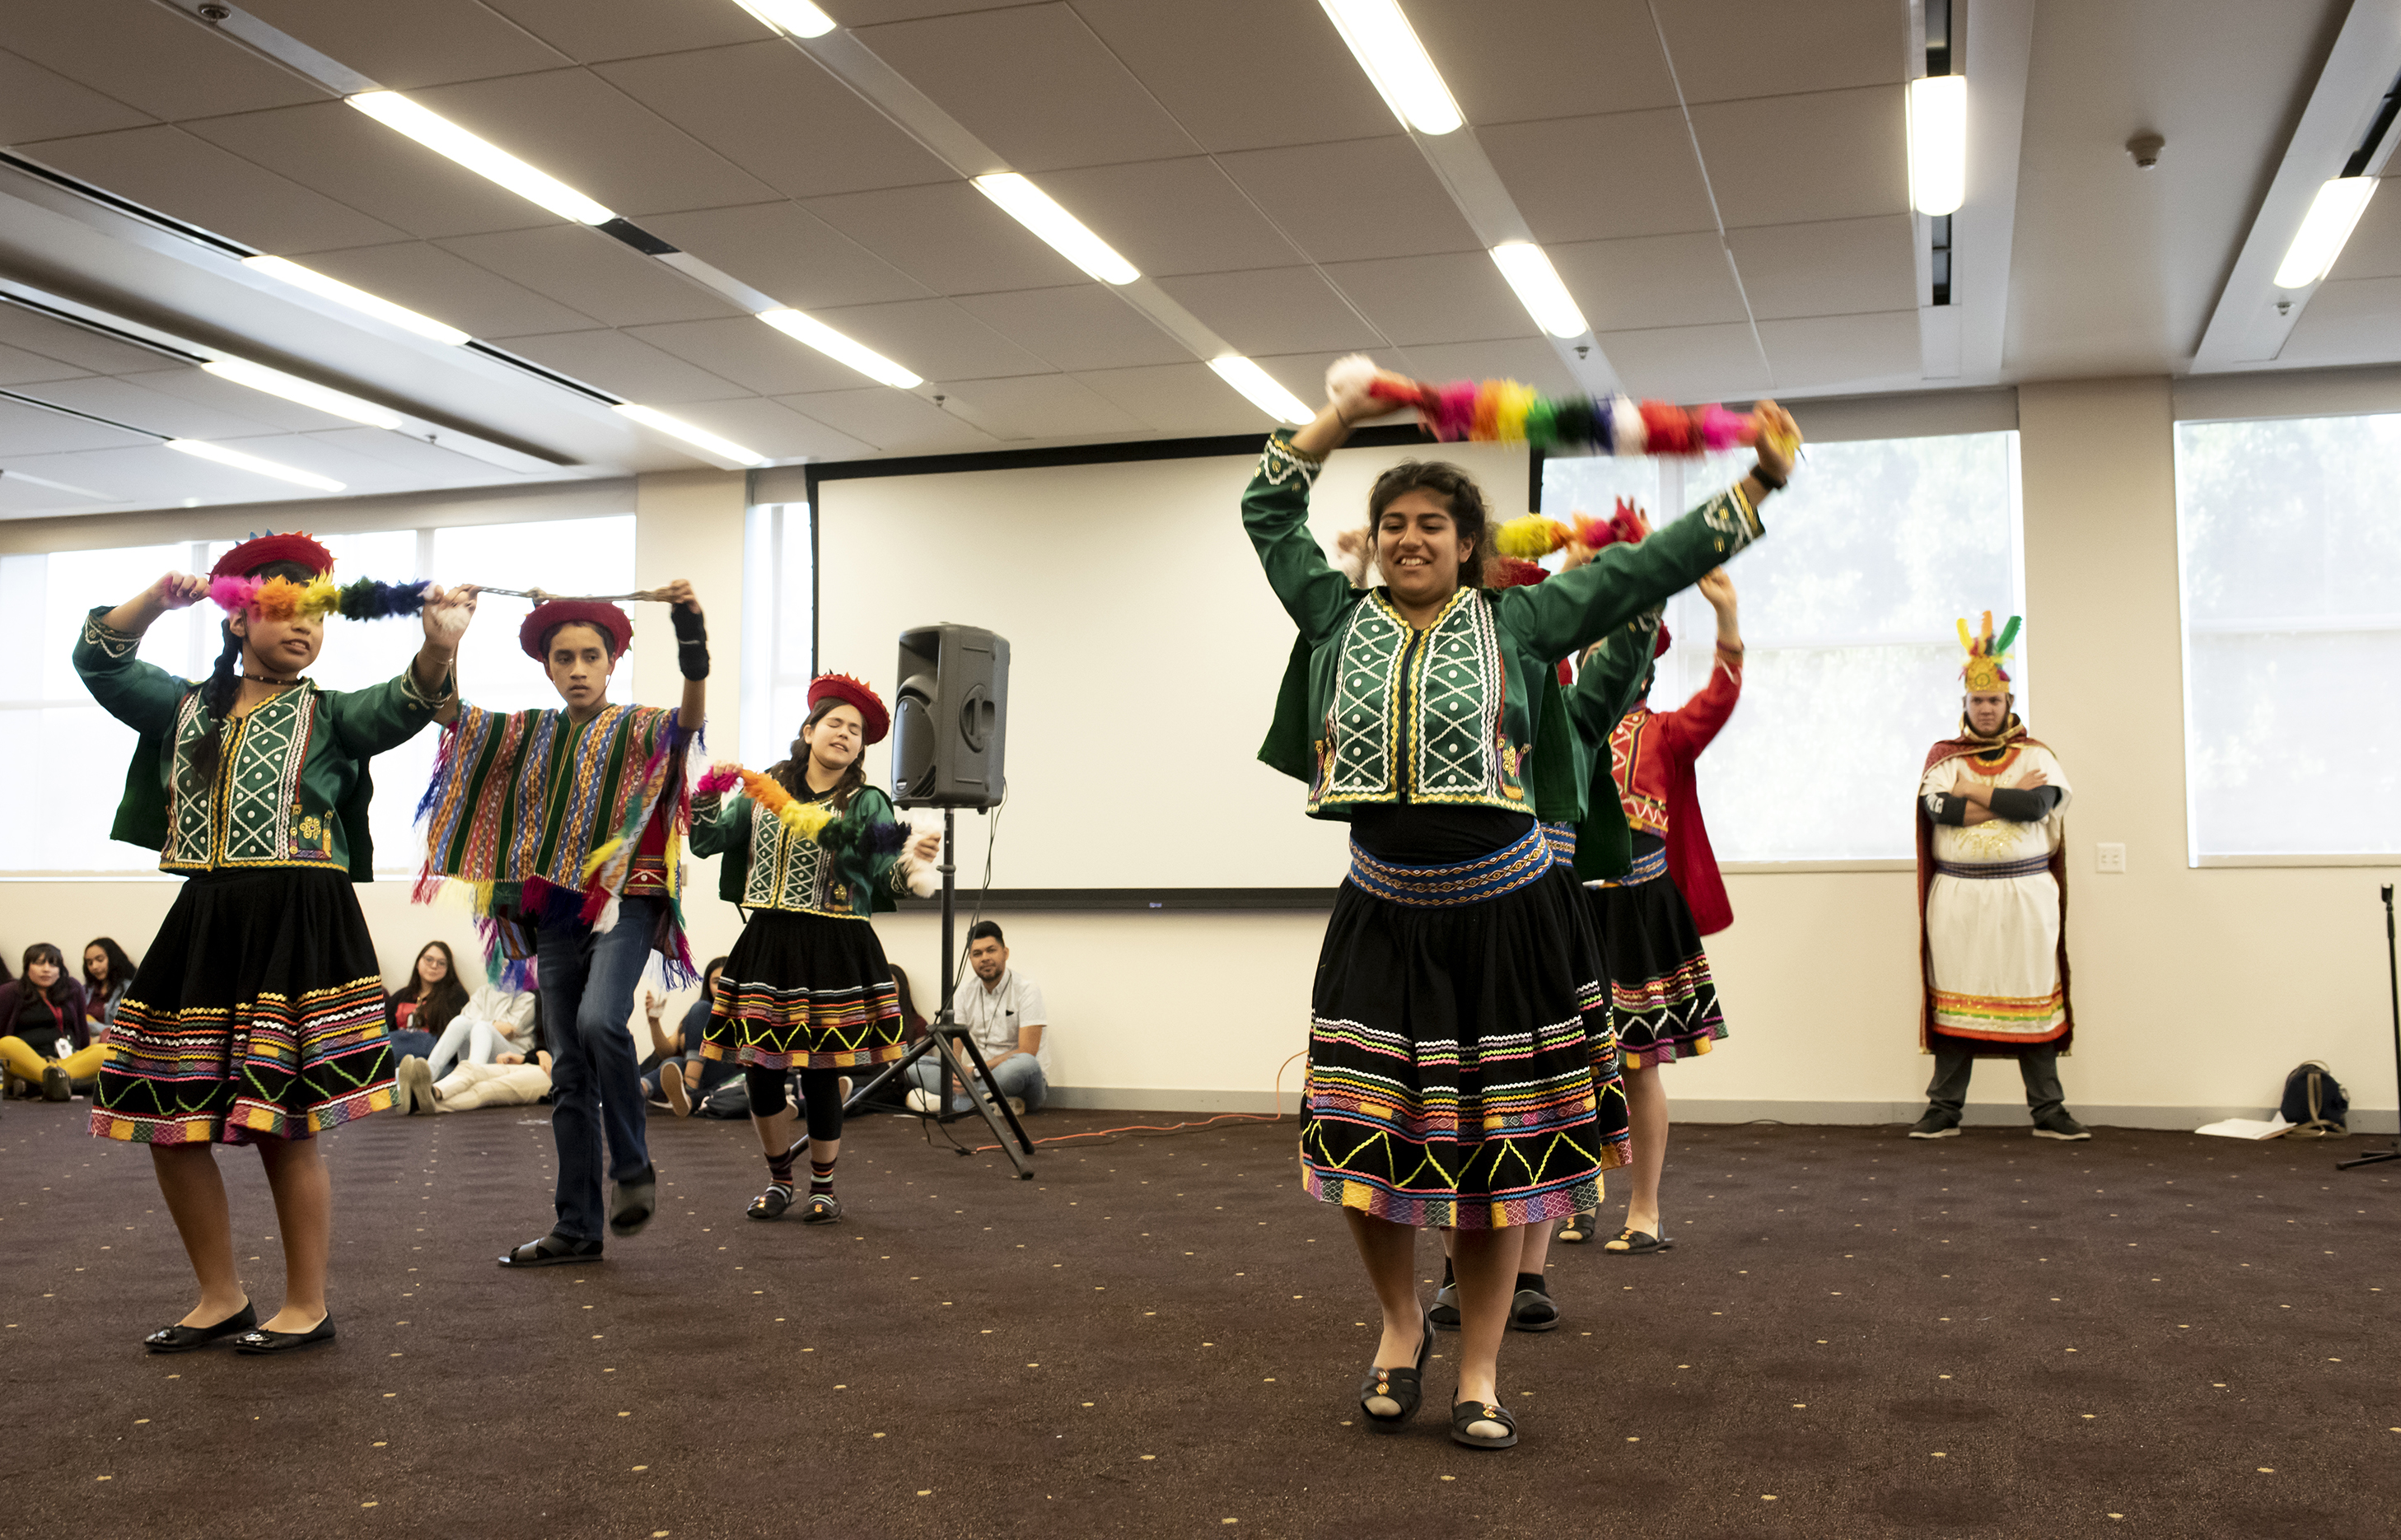 Students from the Learning Foundation and Performing Arts school in Gilbert perform a traditional Peruvian folk dance called valicha at the Memorial Union on the Tempe campus during the School of International Letters and Cultures' annual Language Fair.